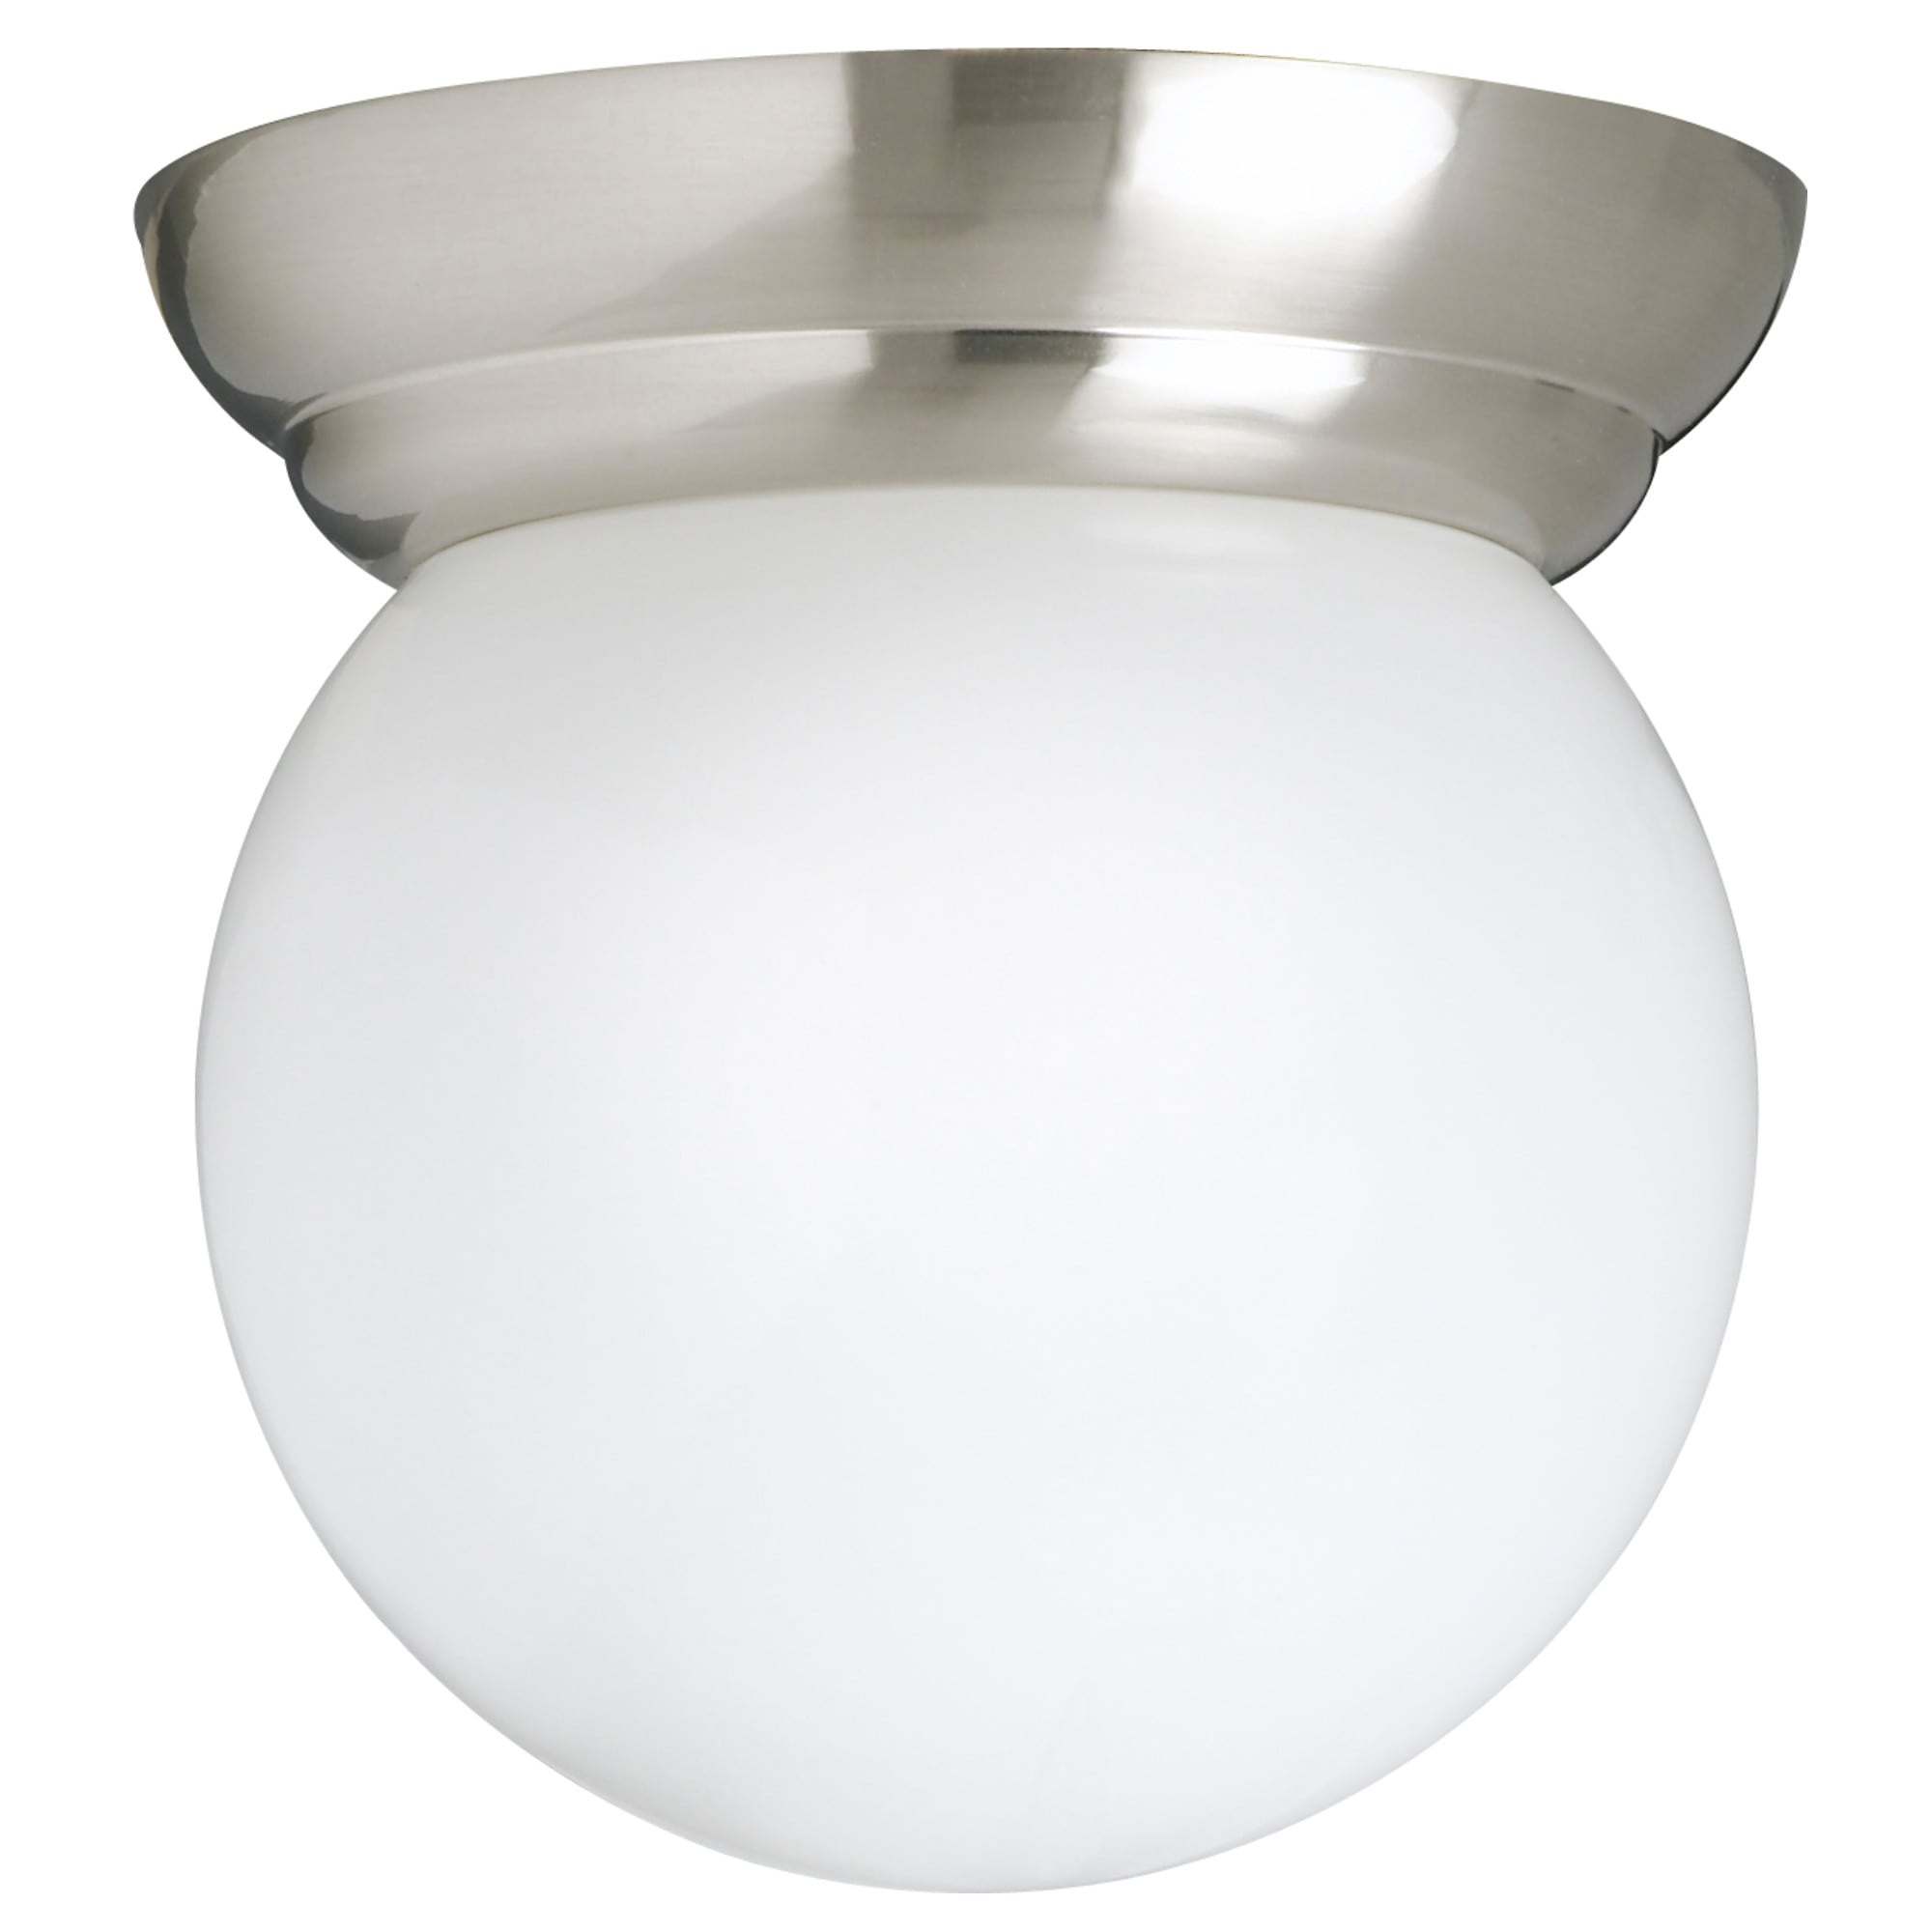 LILLHOLMEN Ceiling/wall Lamp, Nickel Plated, White Max.: 60 W Height